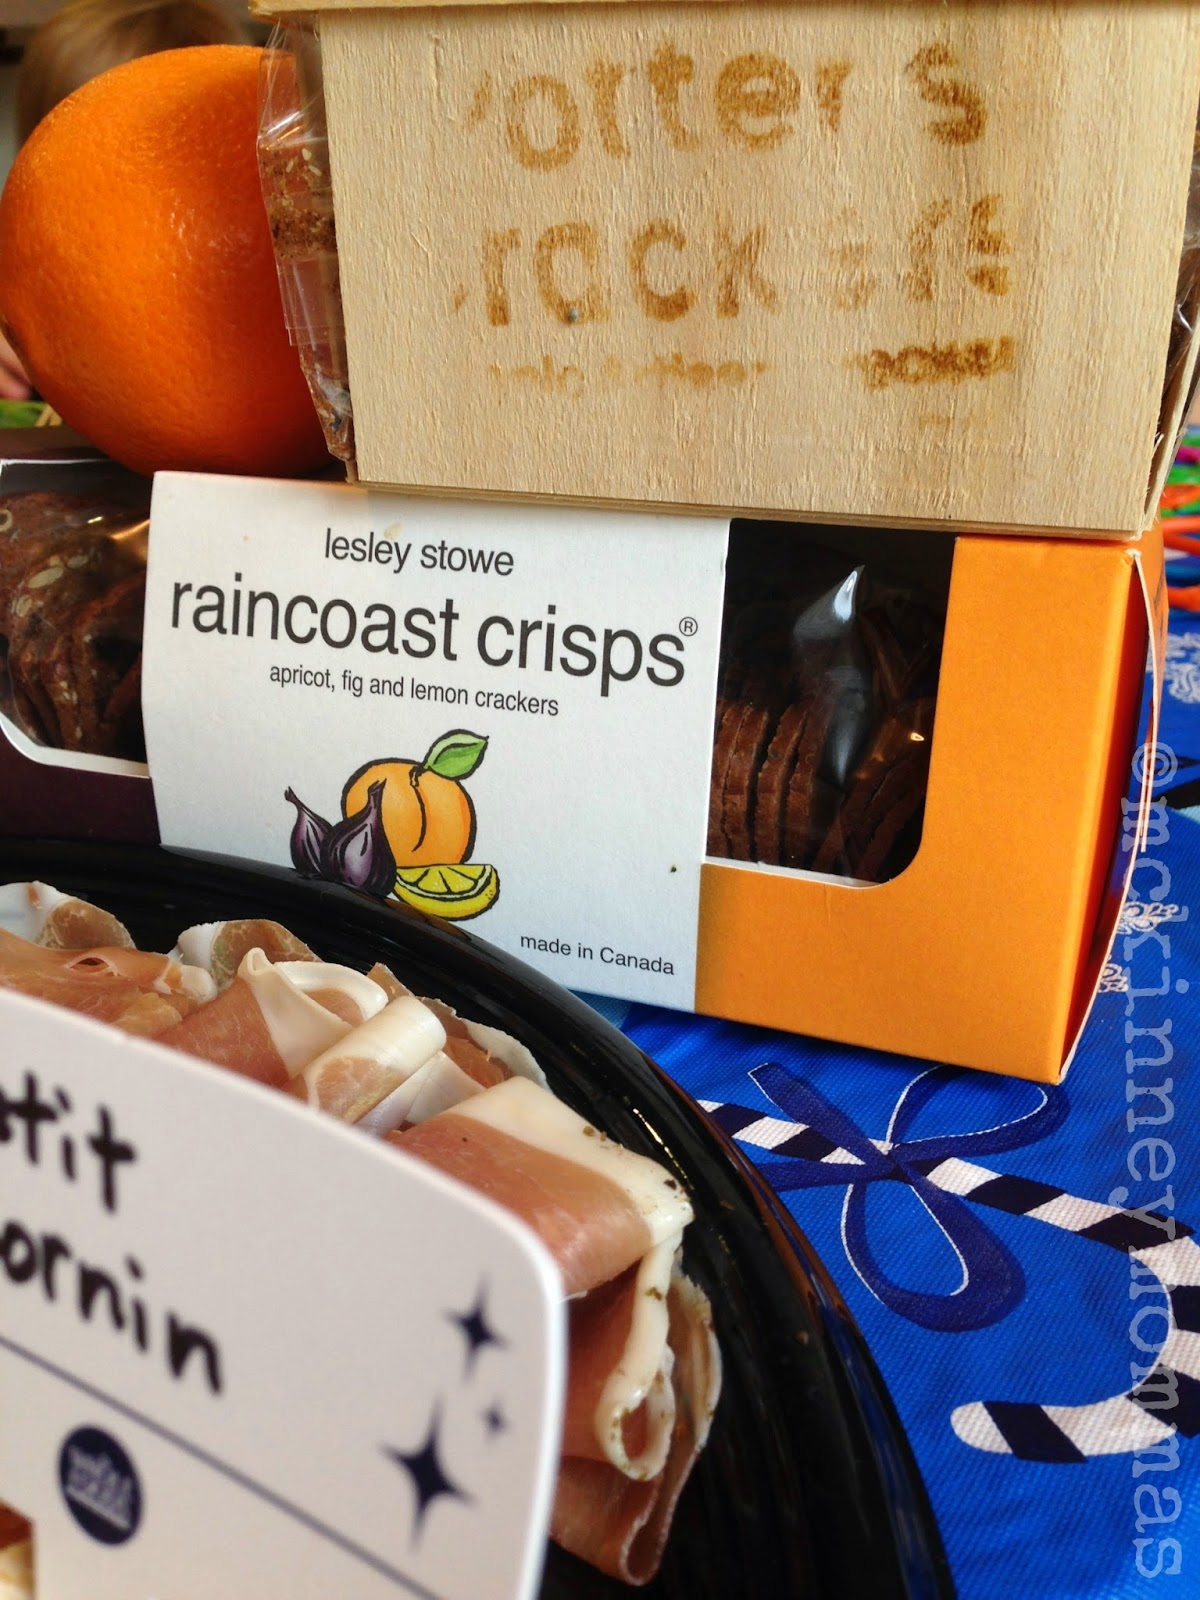 Raincoast Crisps, Potter's Crackers